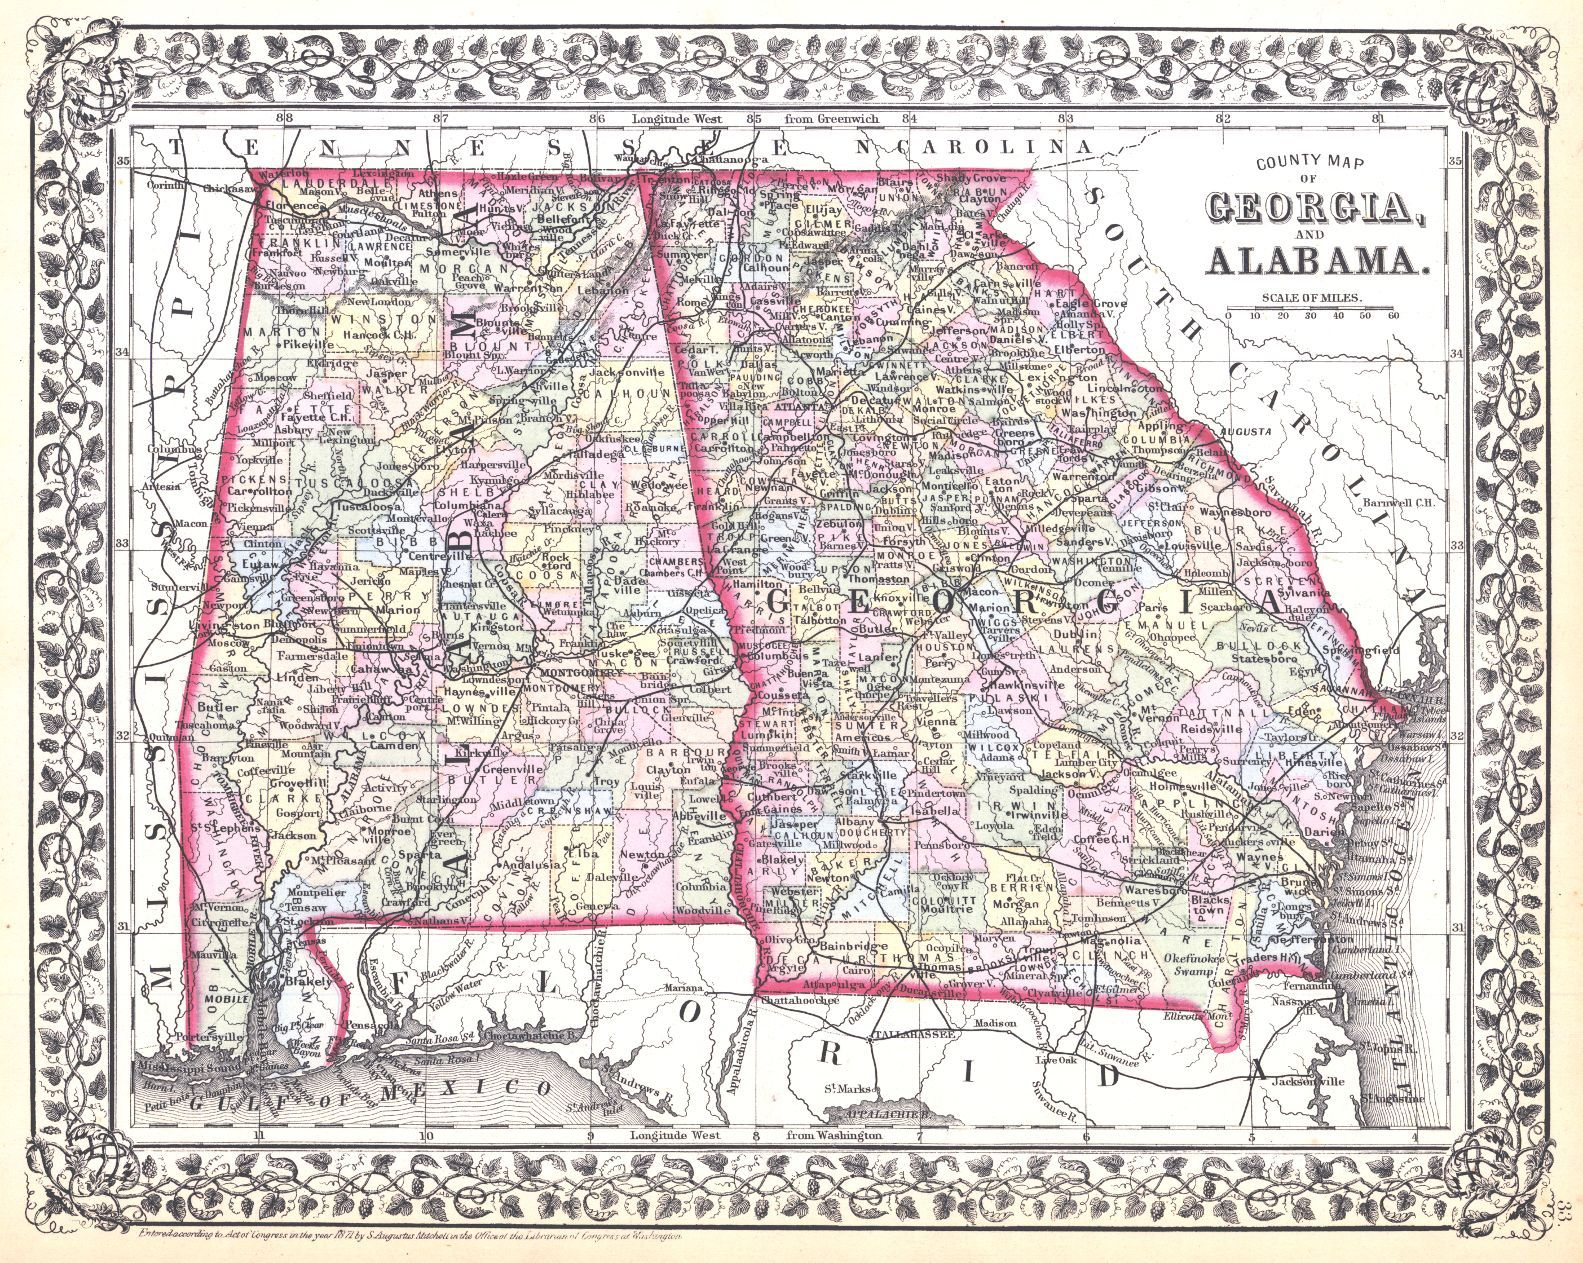 County Map of Georgia and Alabama. Mitc, S.A., Jr ... on ga map, murray county georgia map, georgia map with county lines, haralson county georgia map, georgia map usa, cobb county georgia map, georgia highway map, georgia county map by zip code, georgia economy map, georgia business map, georgia county map printable, georgia town map, georgia cities, georgia regions, georgia capitals map, atlanta map, georgia and russia map, georgia lakes map, georgia states map, georgia indian trails map,